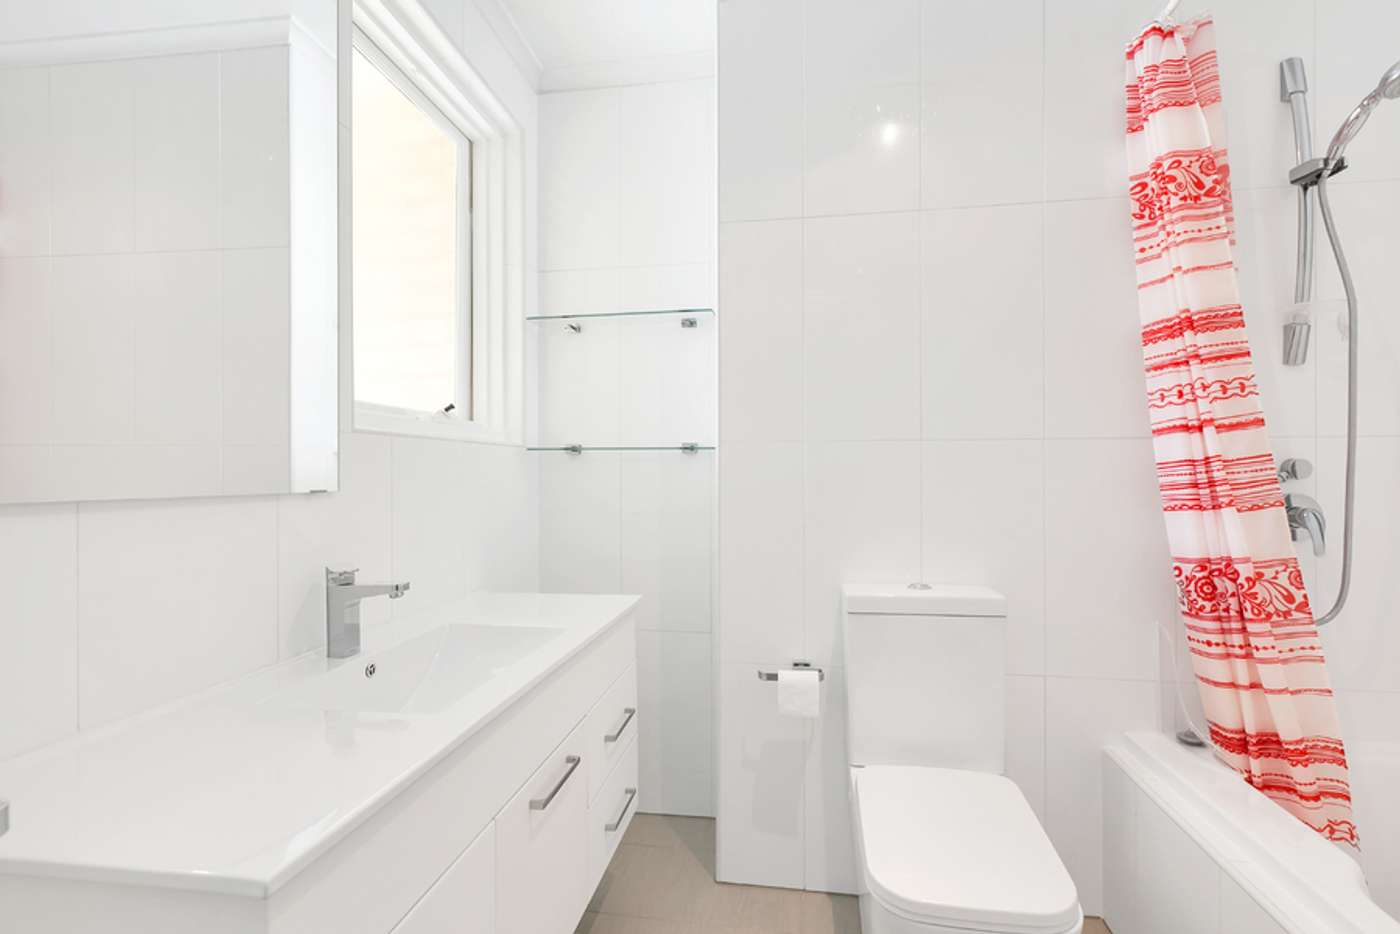 Sixth view of Homely unit listing, 2/2 St Annes Terrace, Glenelg North SA 5045